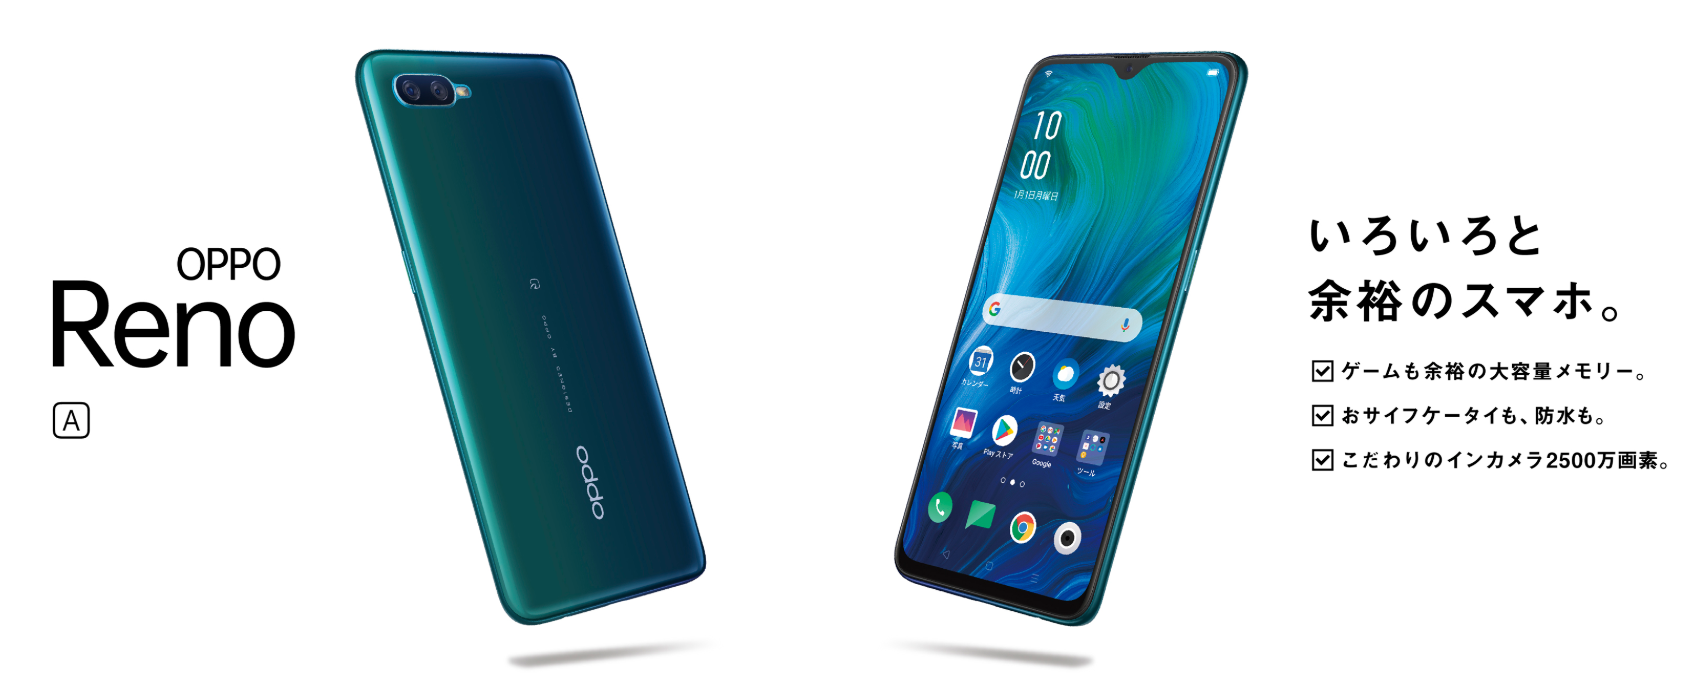 OPPO_reno_A.png